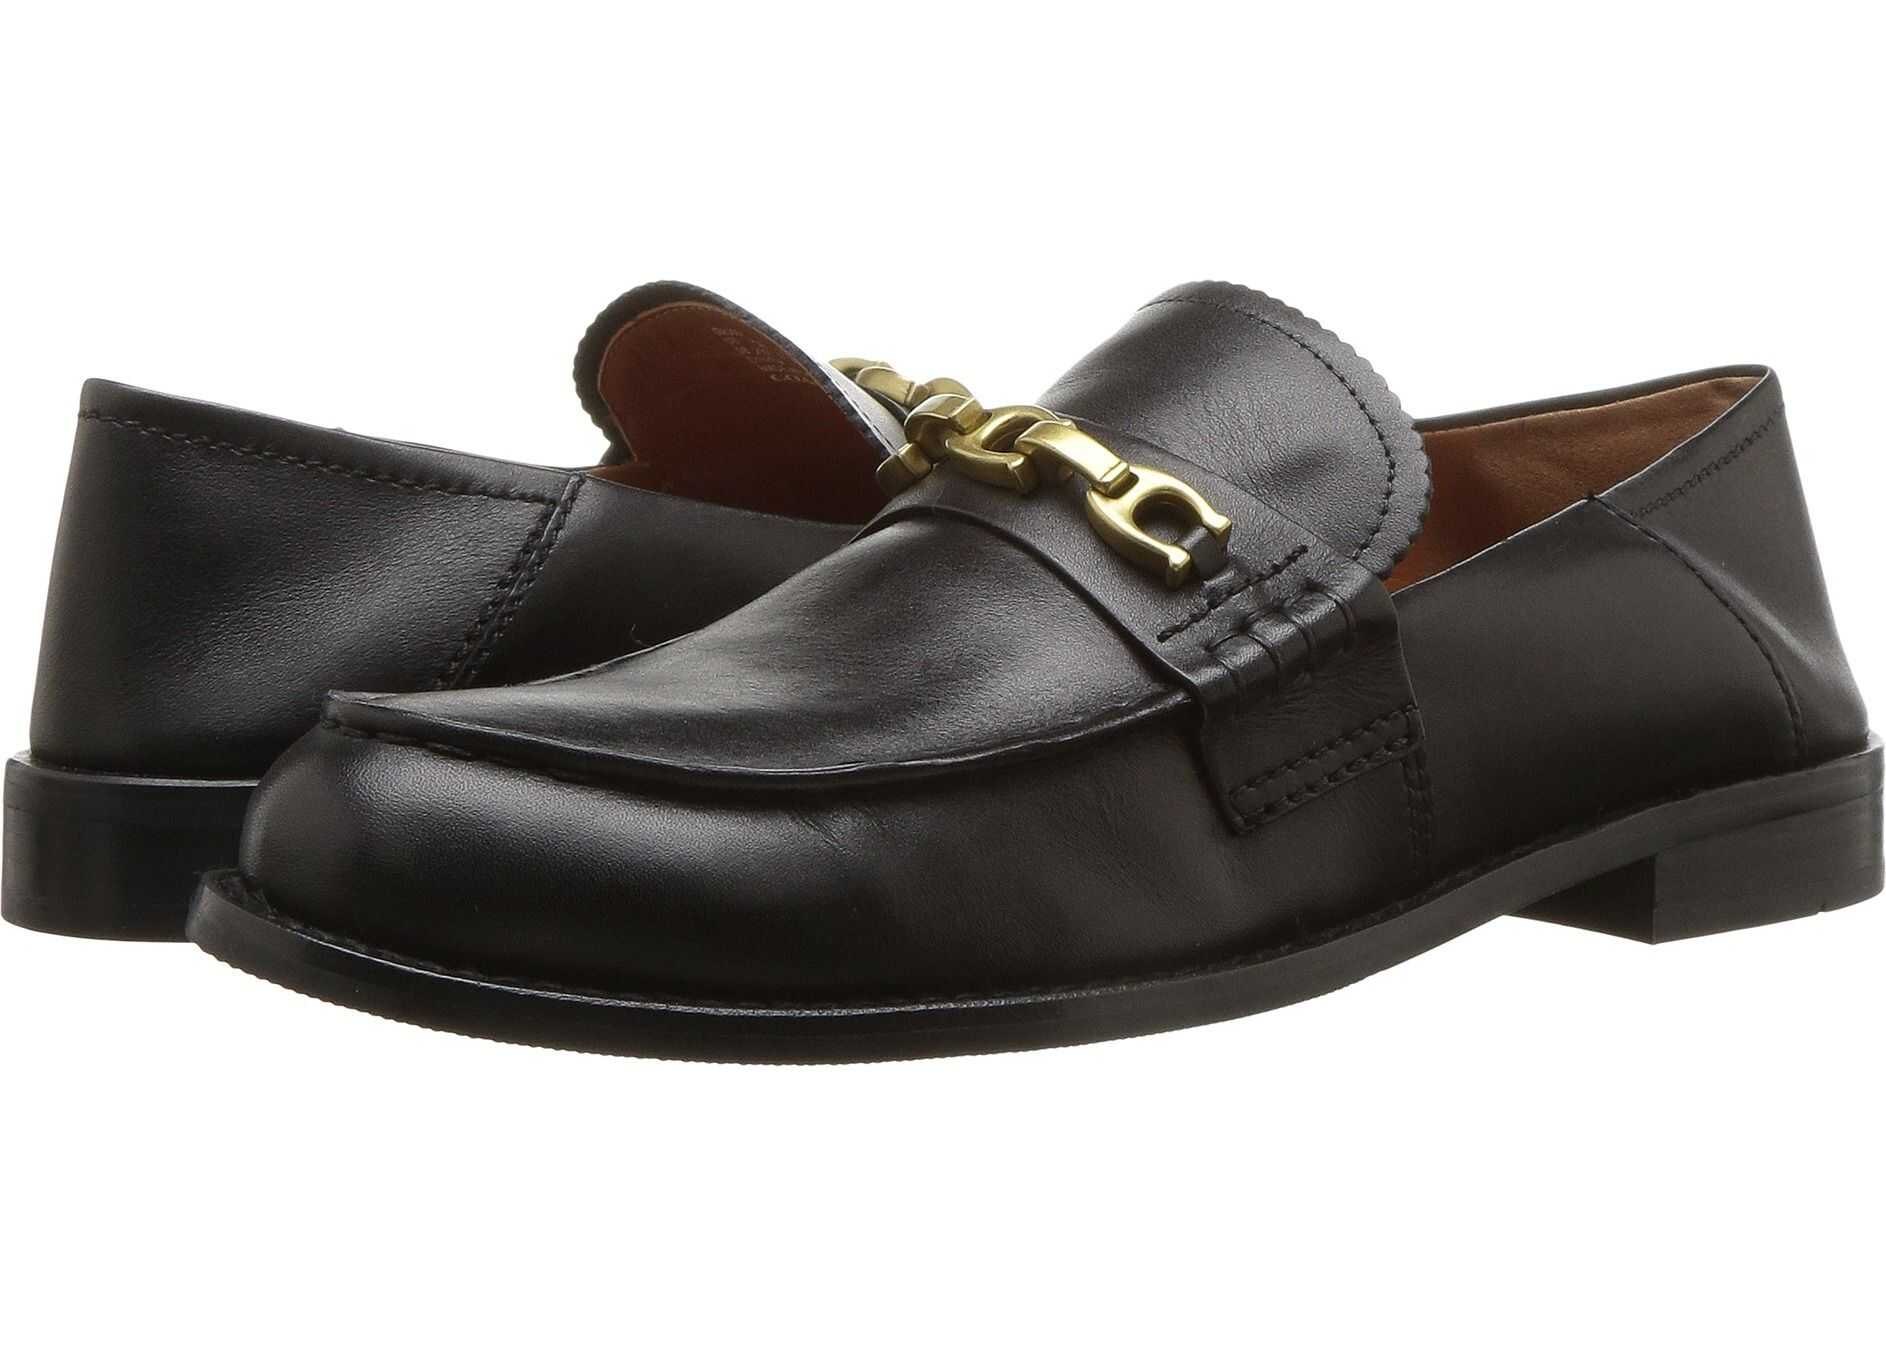 COACH Putnam Loafer with Signature Chain Black Leather